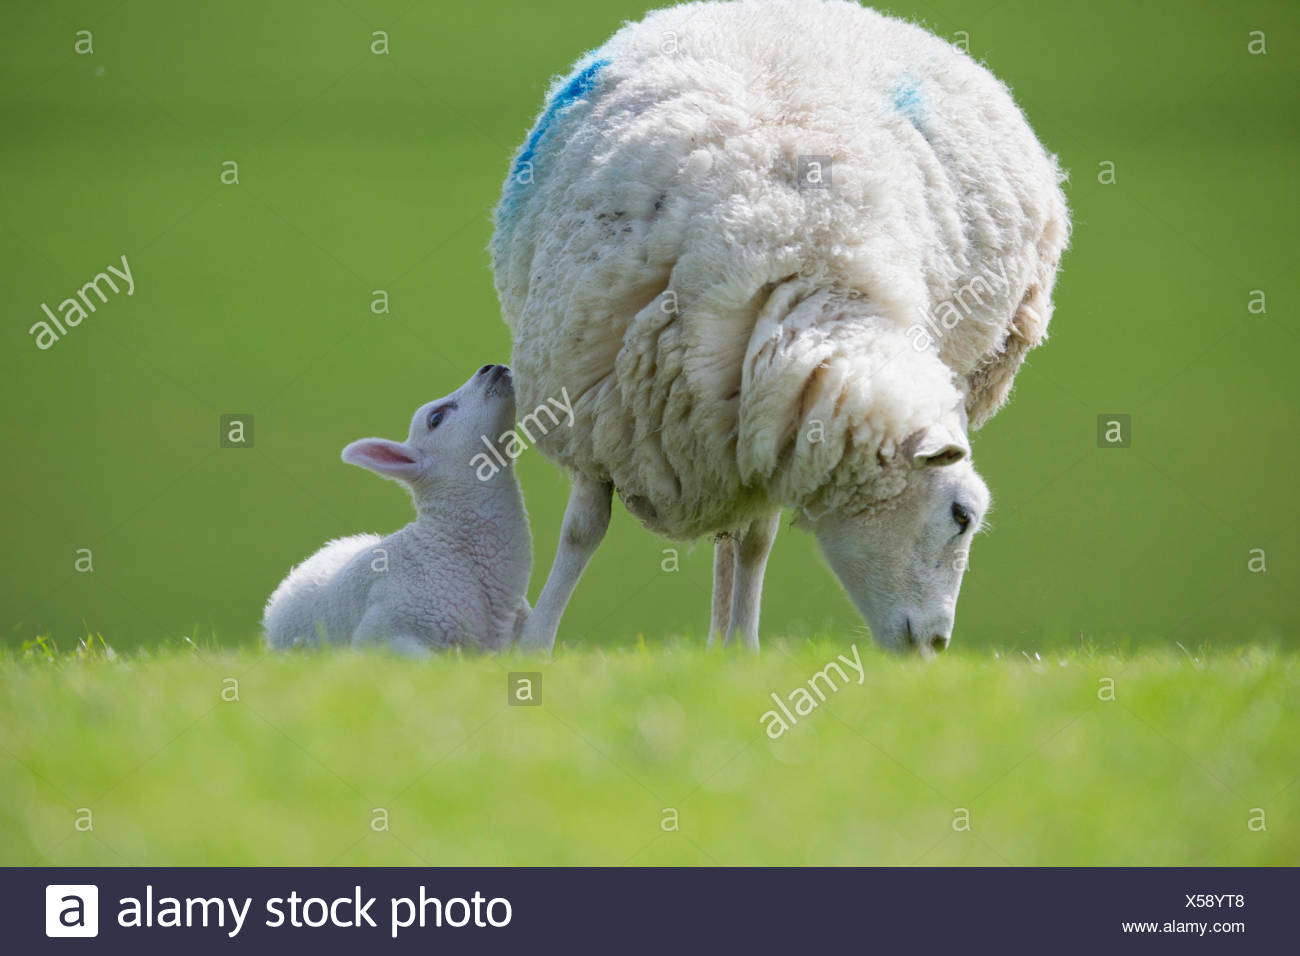 Lamb and grazing sheep in green spring field - Stock Image